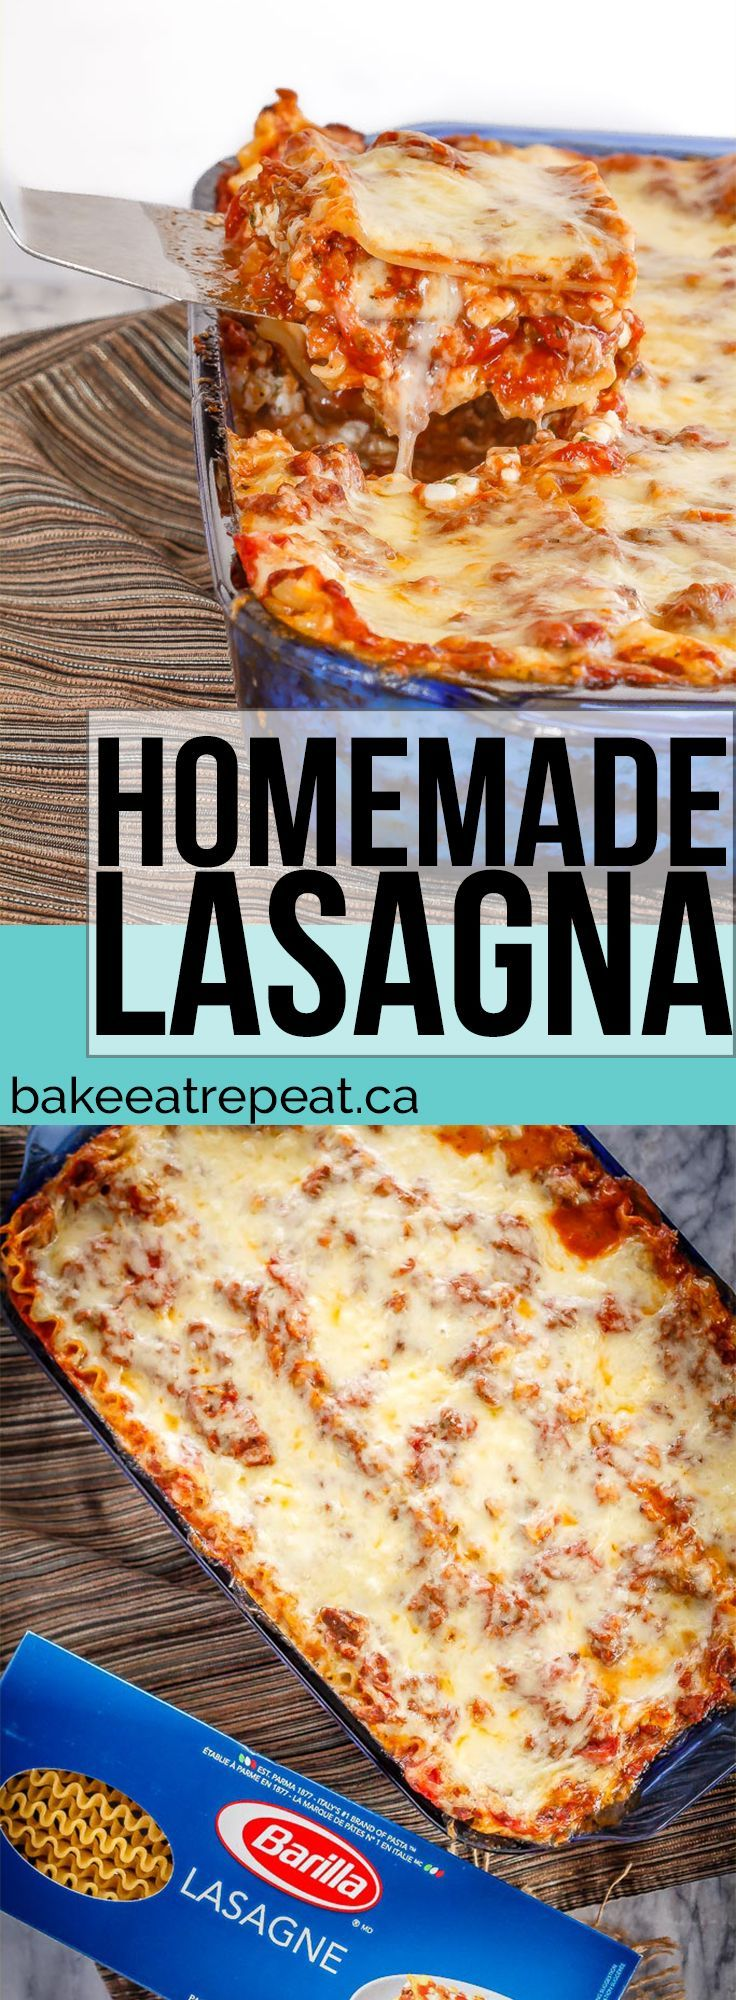 Homemade lasagna is one of my family's favourite meals. A thick and chunky meat sauce and lots of cheese, layered with tender pasta - perfect comfort food! #WorldPastaDay #ad